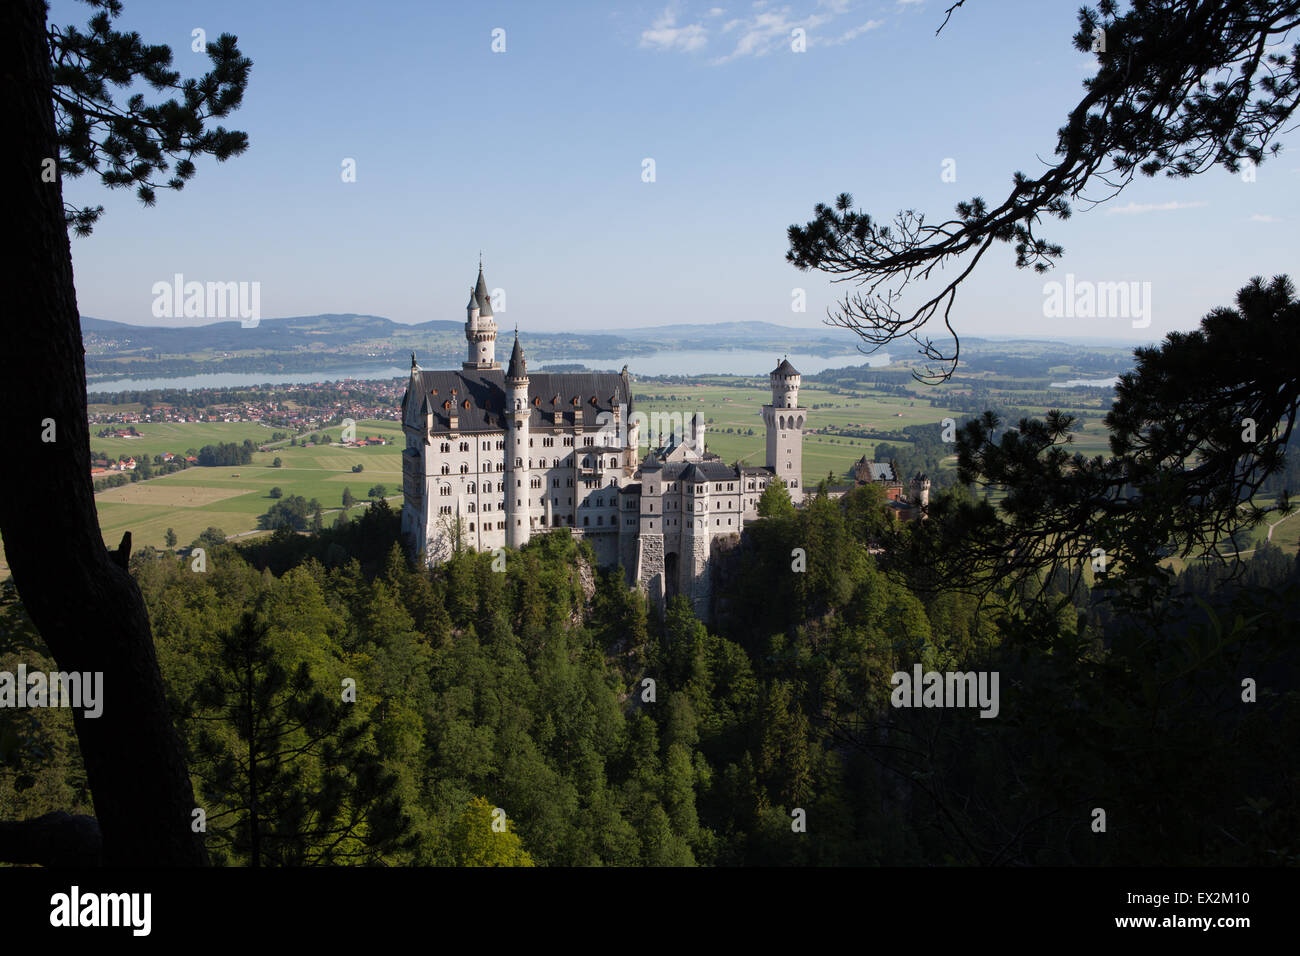 Neuschwanstein Castle is a 19th-century Romanesque Revival palace on a rugged hill above the village of Hohenschwangau - Stock Image